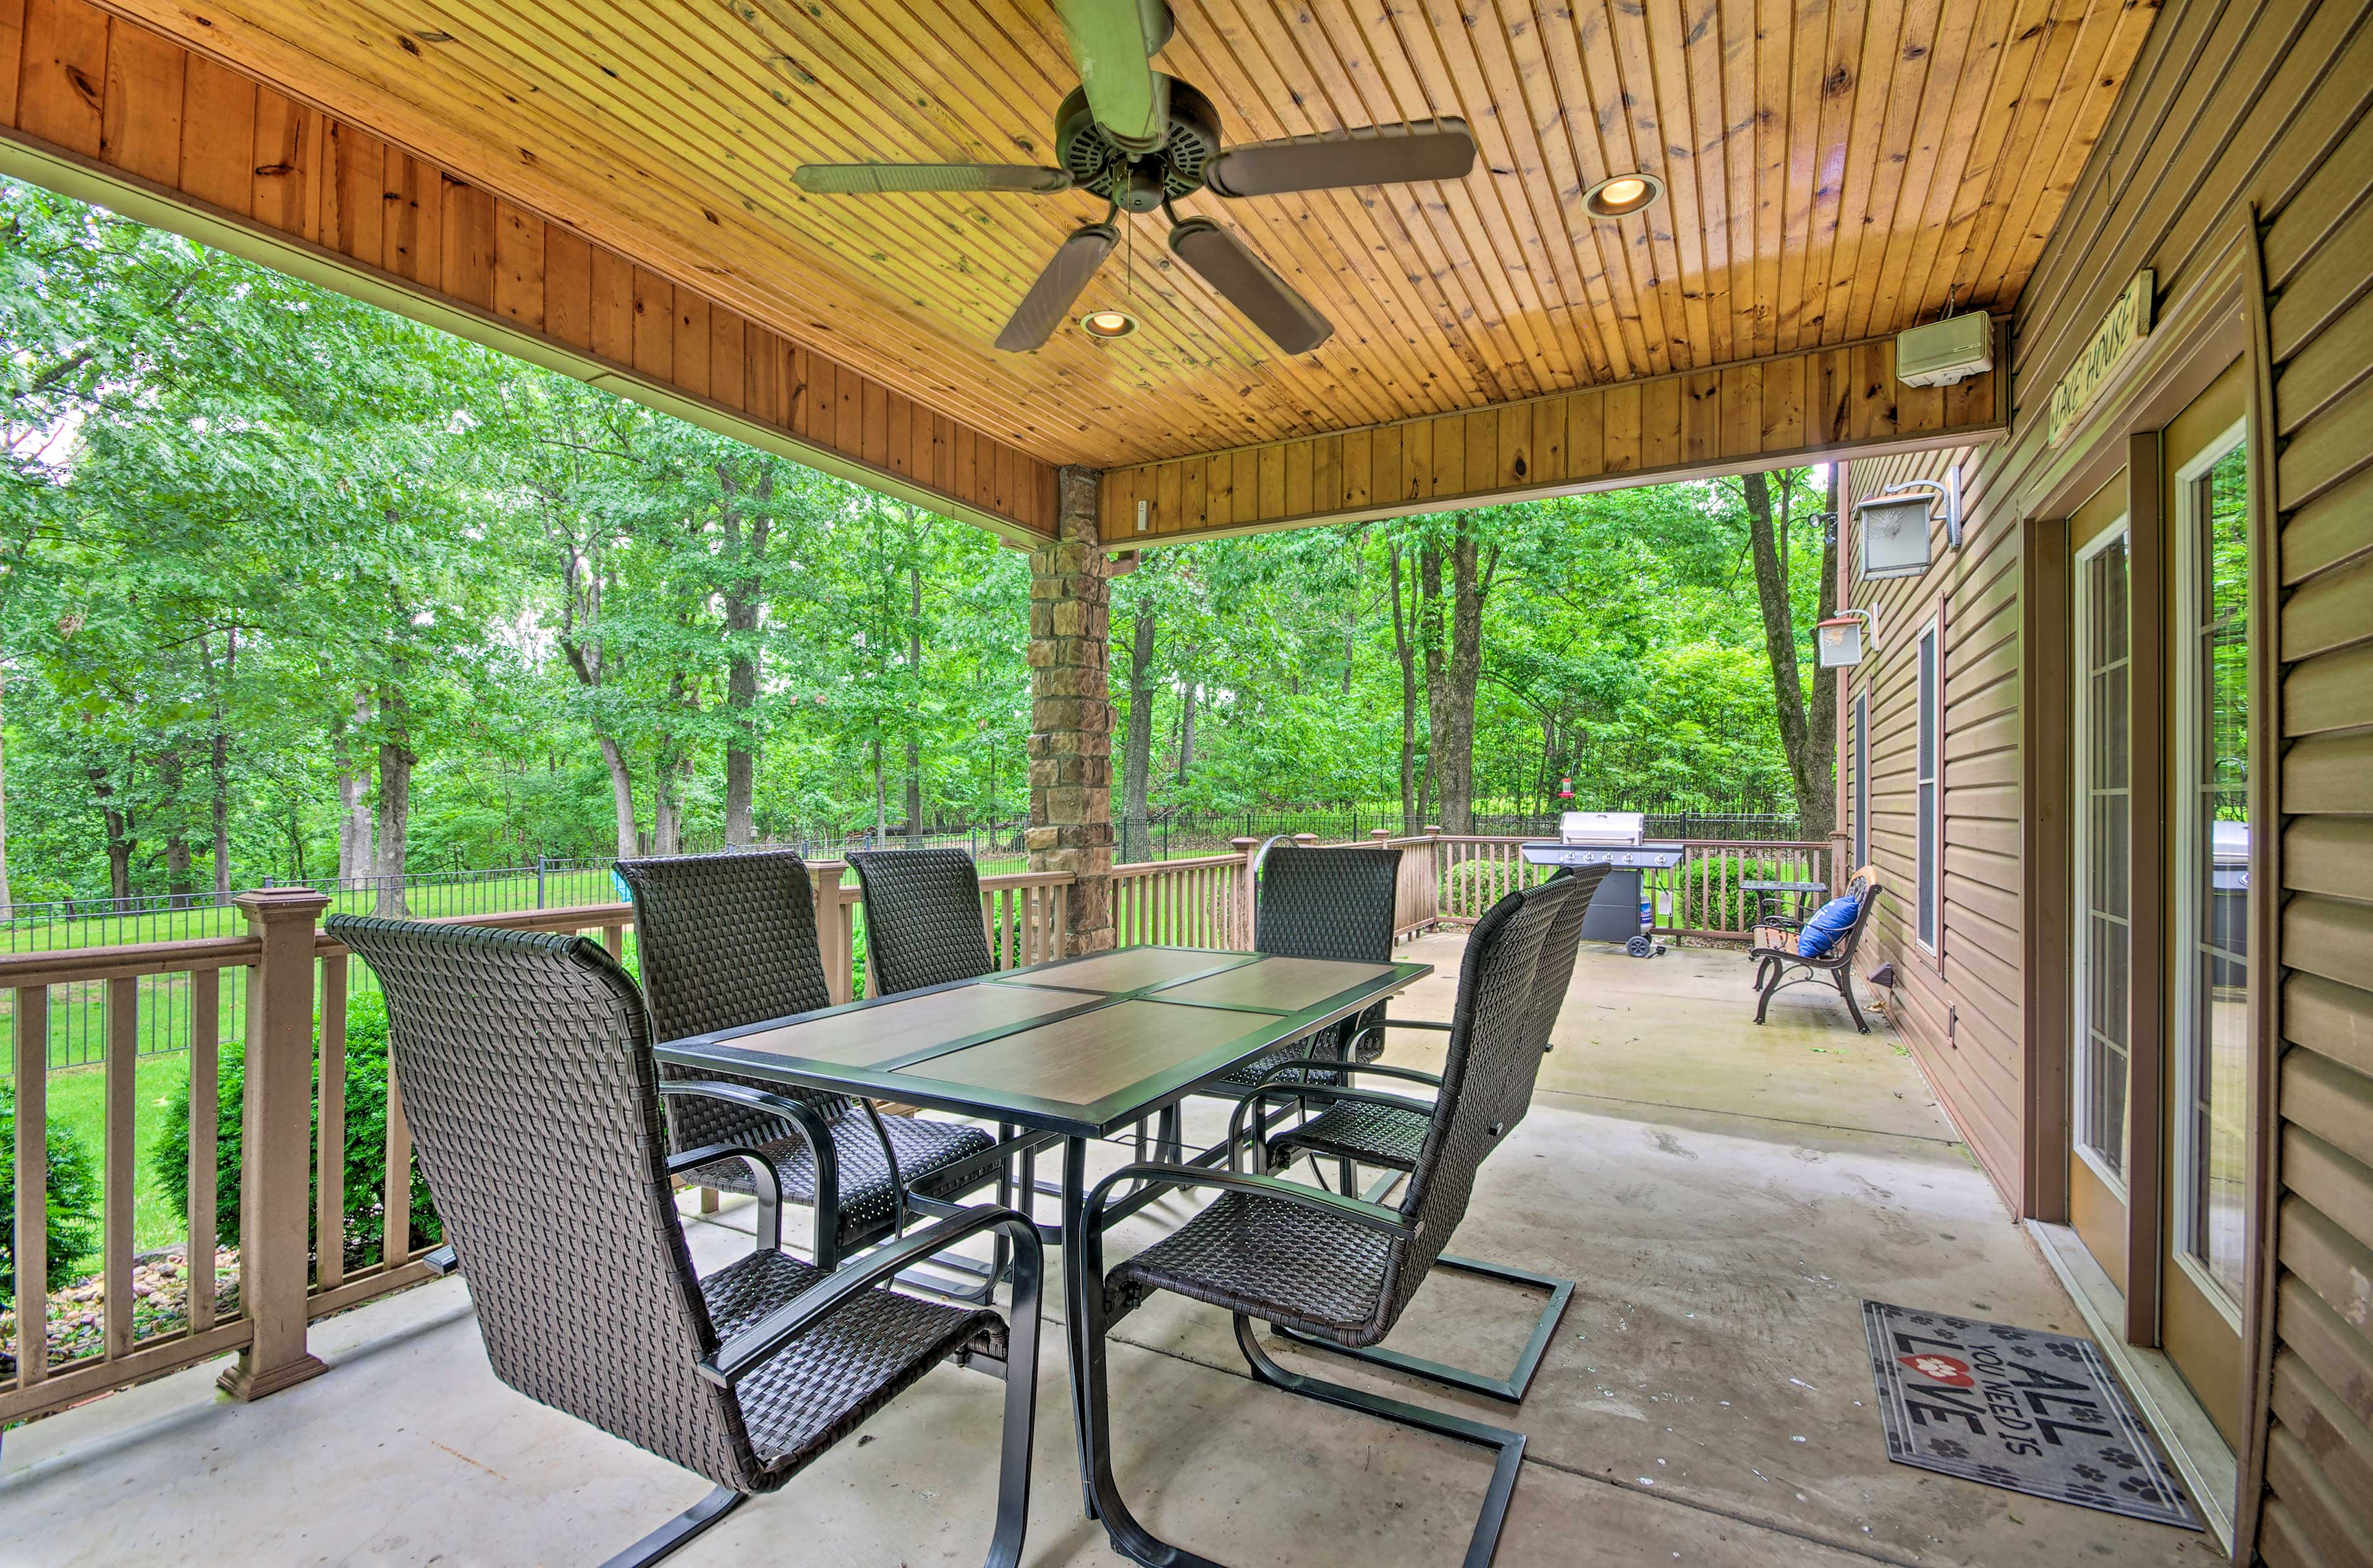 Step onto the covered deck for an evening cookout with the gas grill!